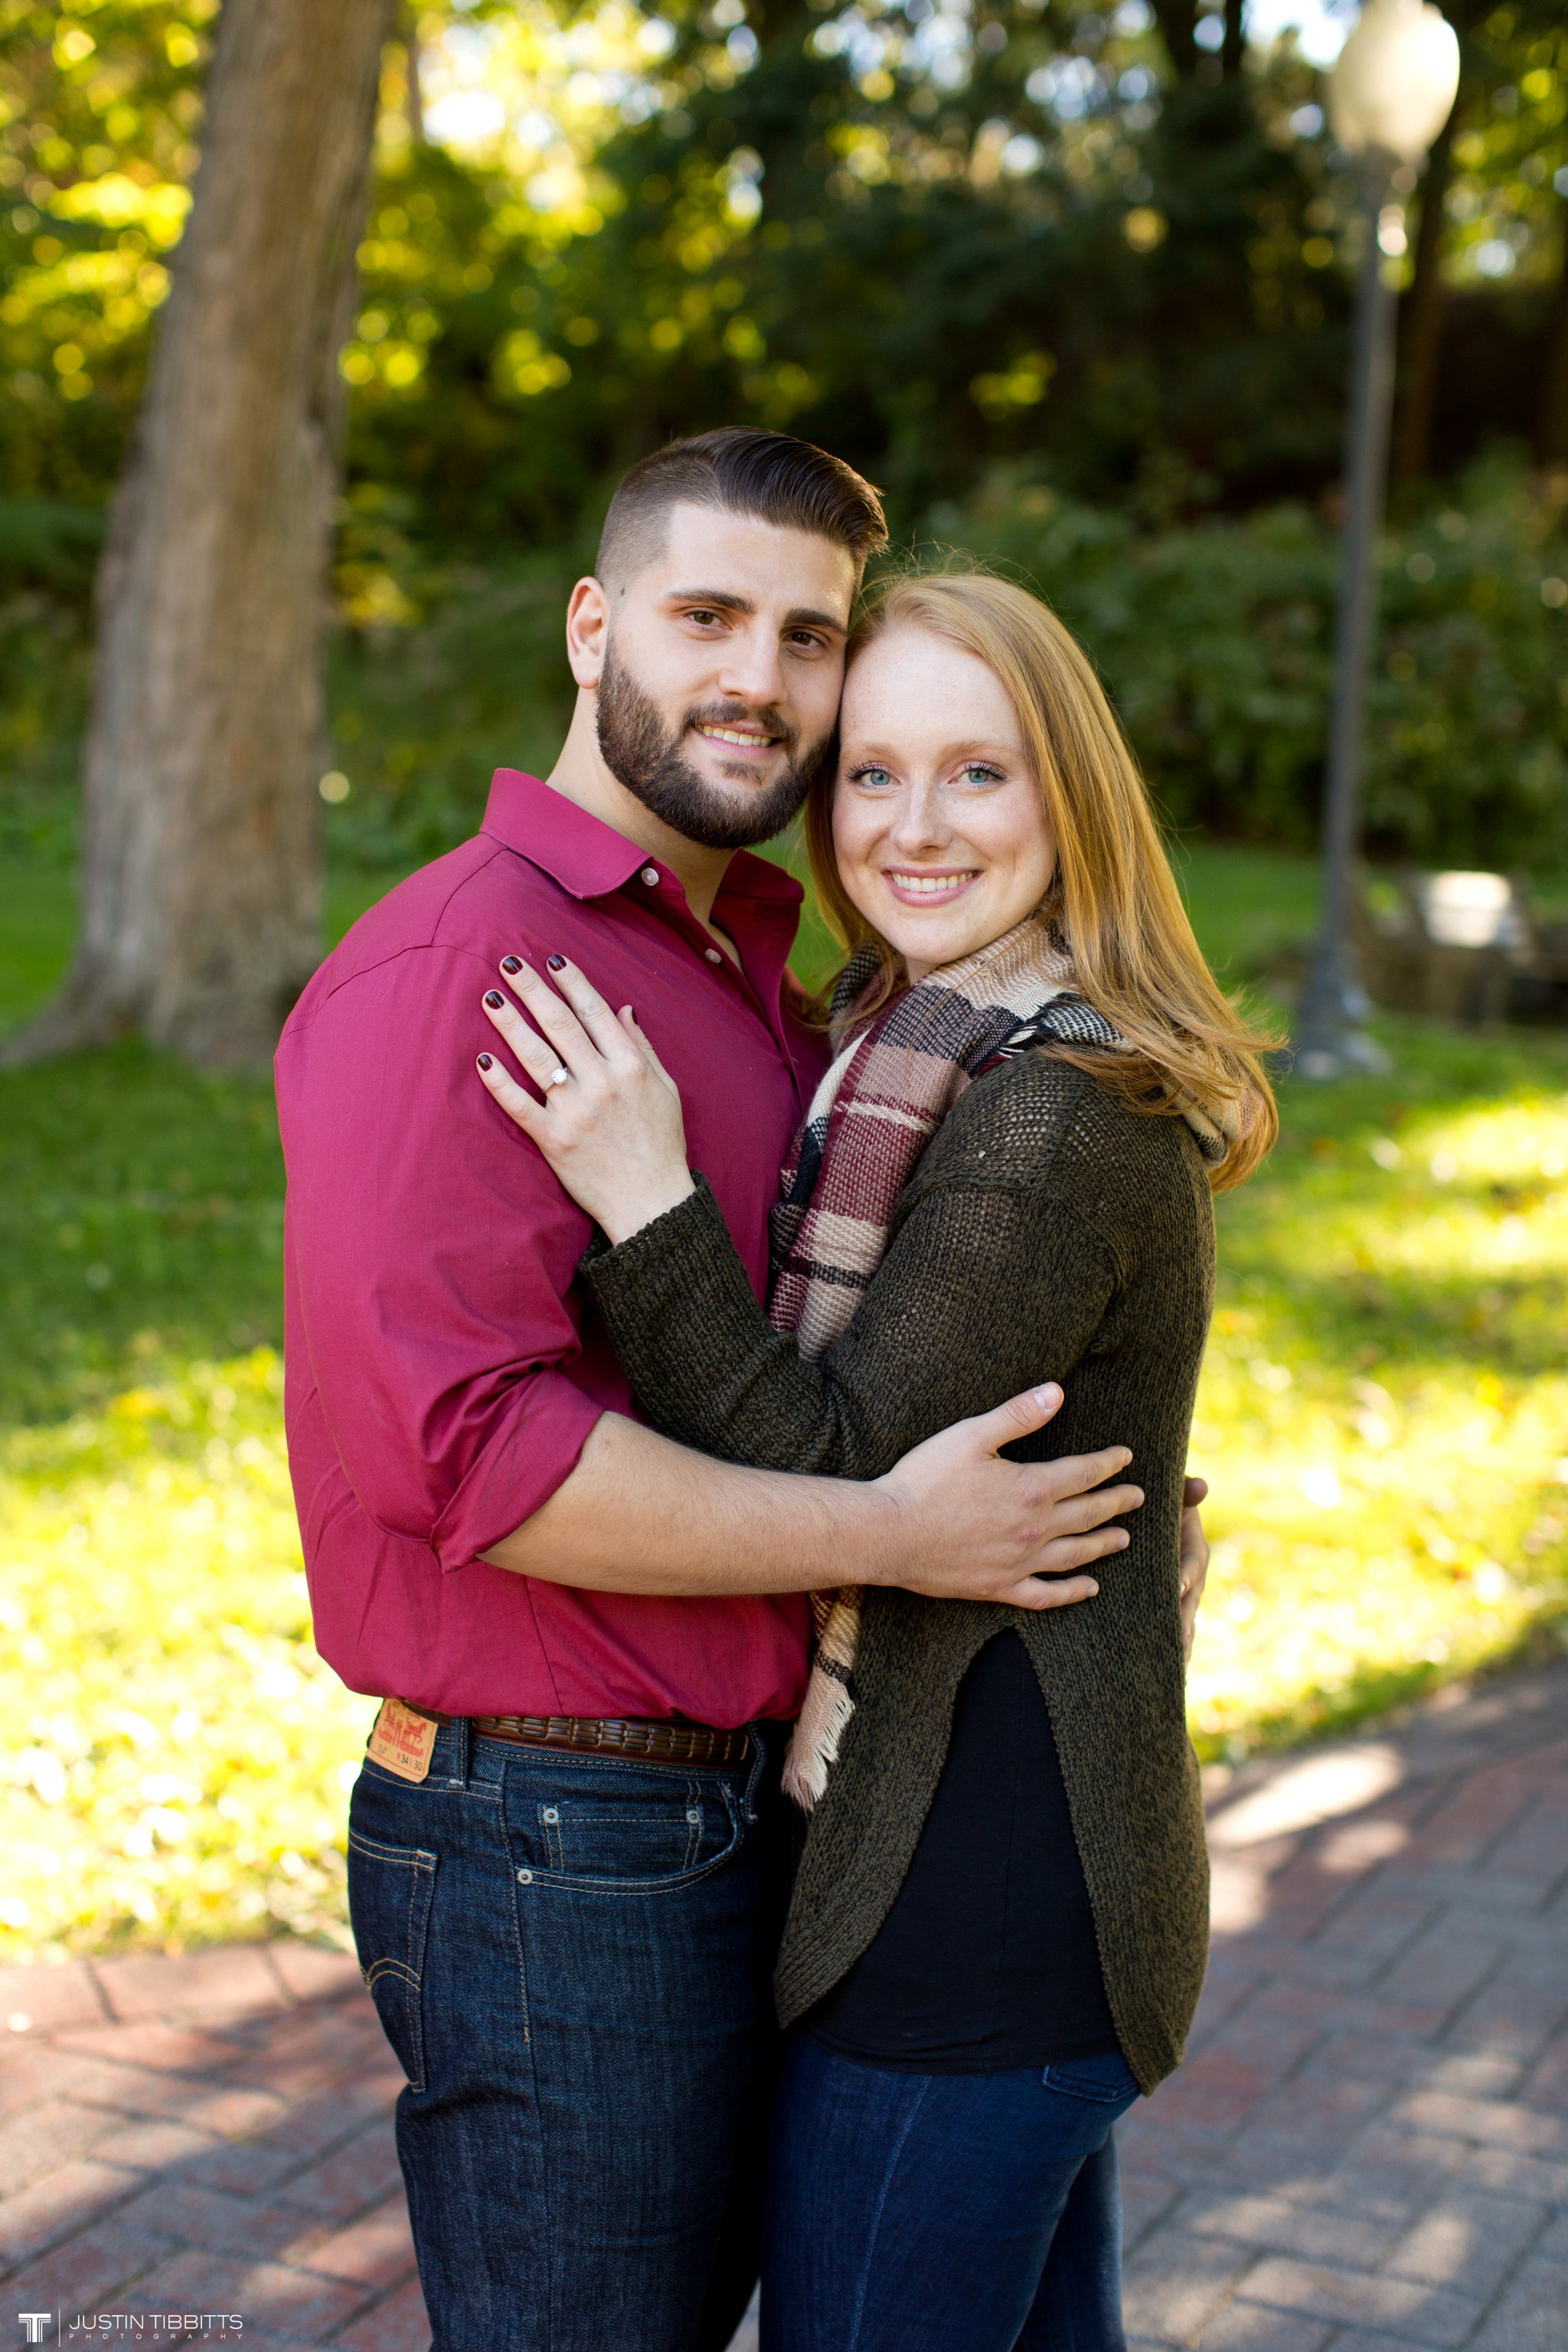 congress-park-saratoga-springs-engagement-photos-with-lauren-and-nick_0005